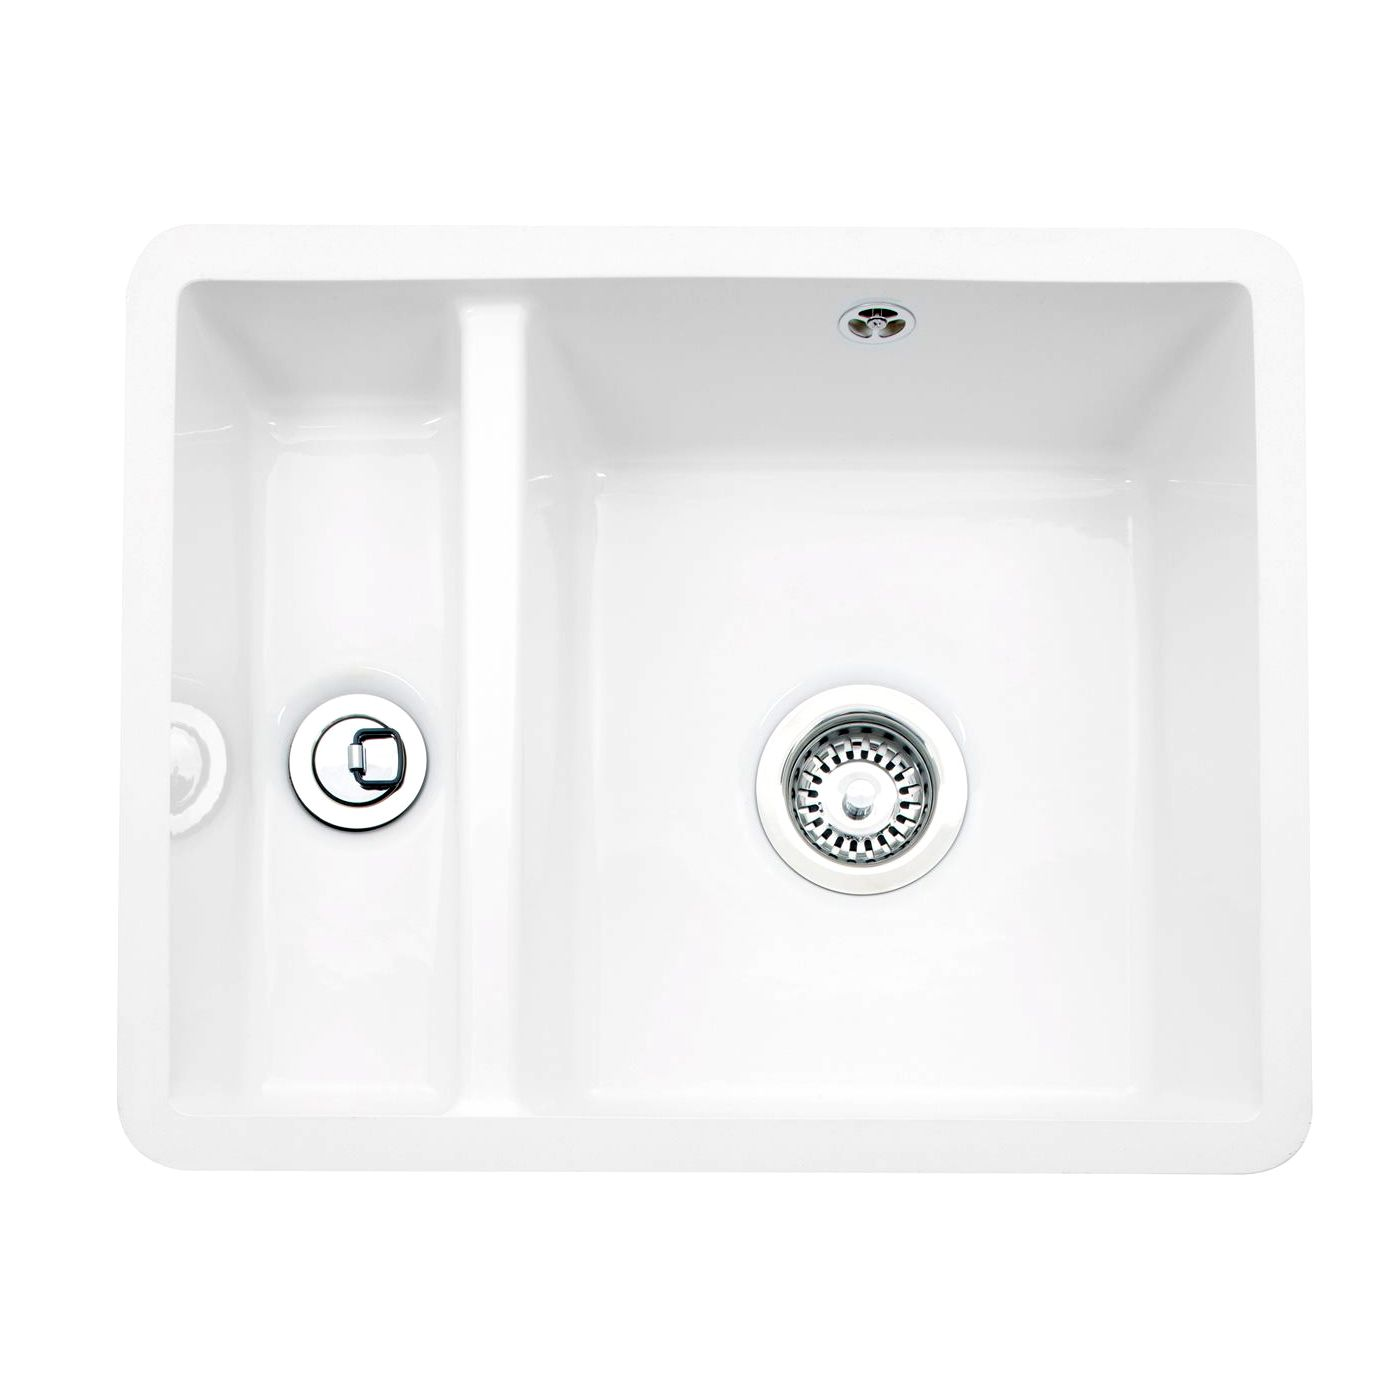 ceramic kitchen sinks 1 5 bowl caple friska 1 5 bowl undermount ceramic sink sinks taps 8091